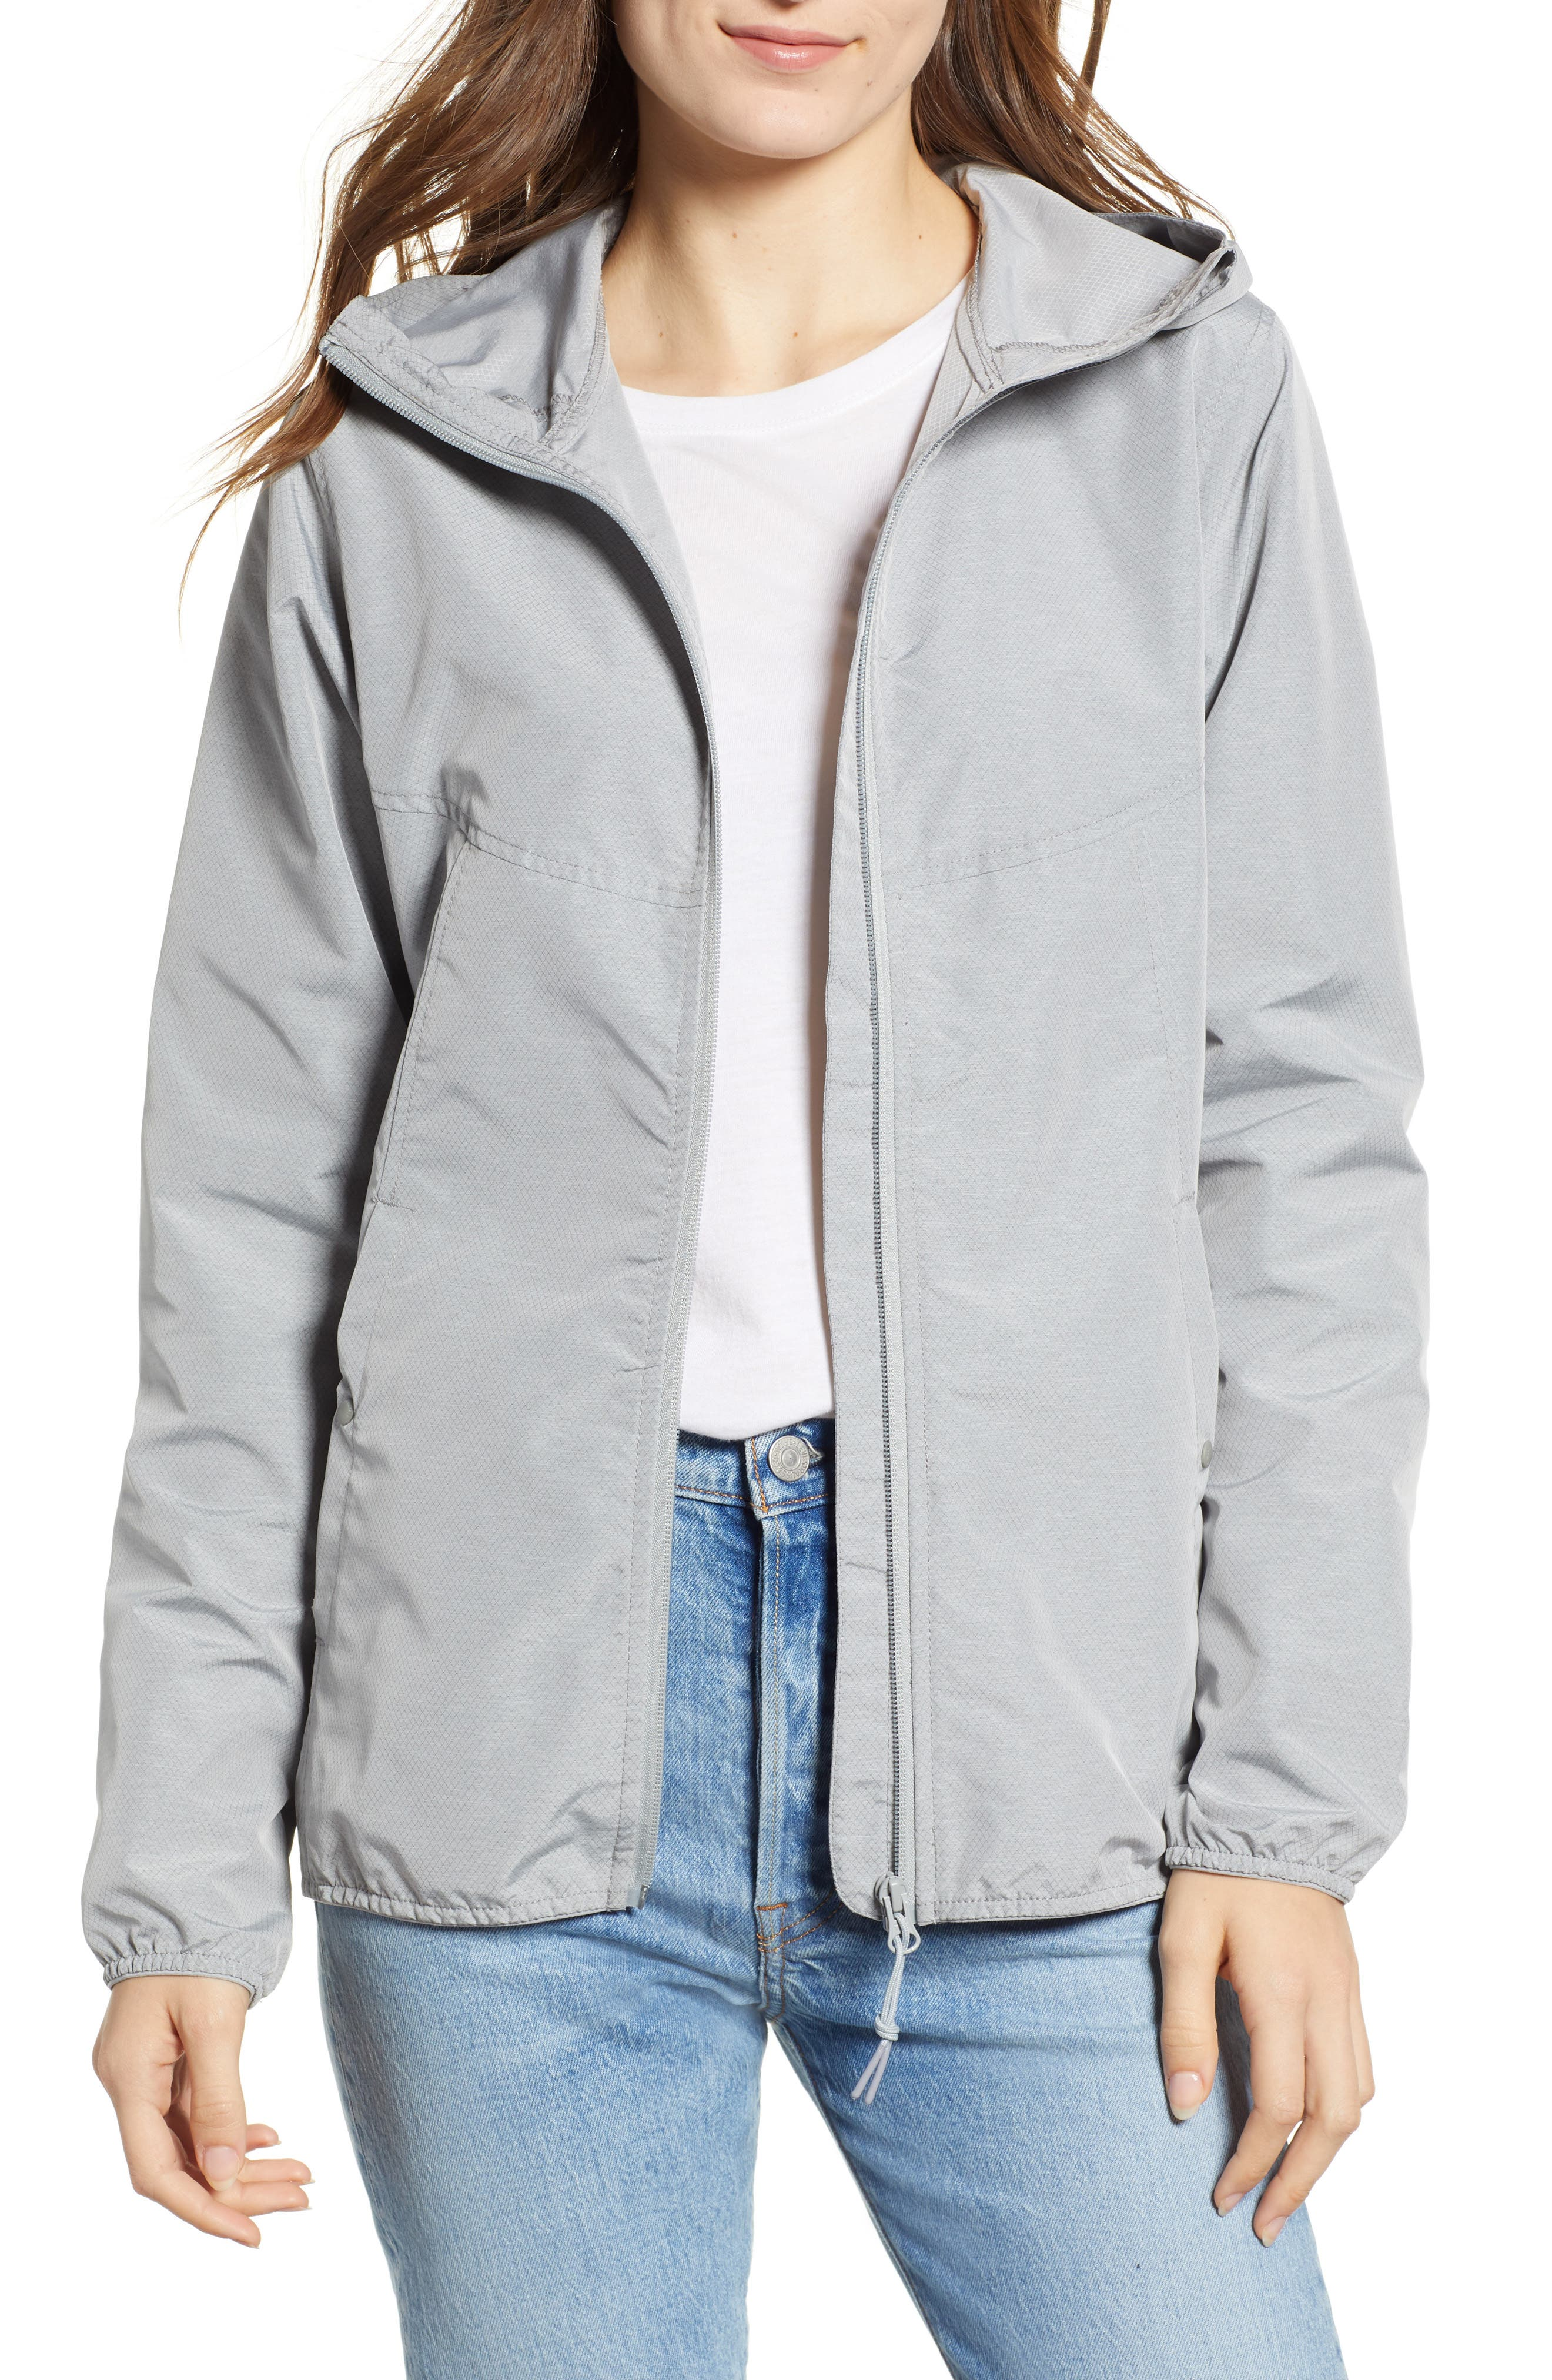 oyage Wind Hooded Jacket,                             Main thumbnail 1, color,                             LIGHT GREY CROSSHATCH